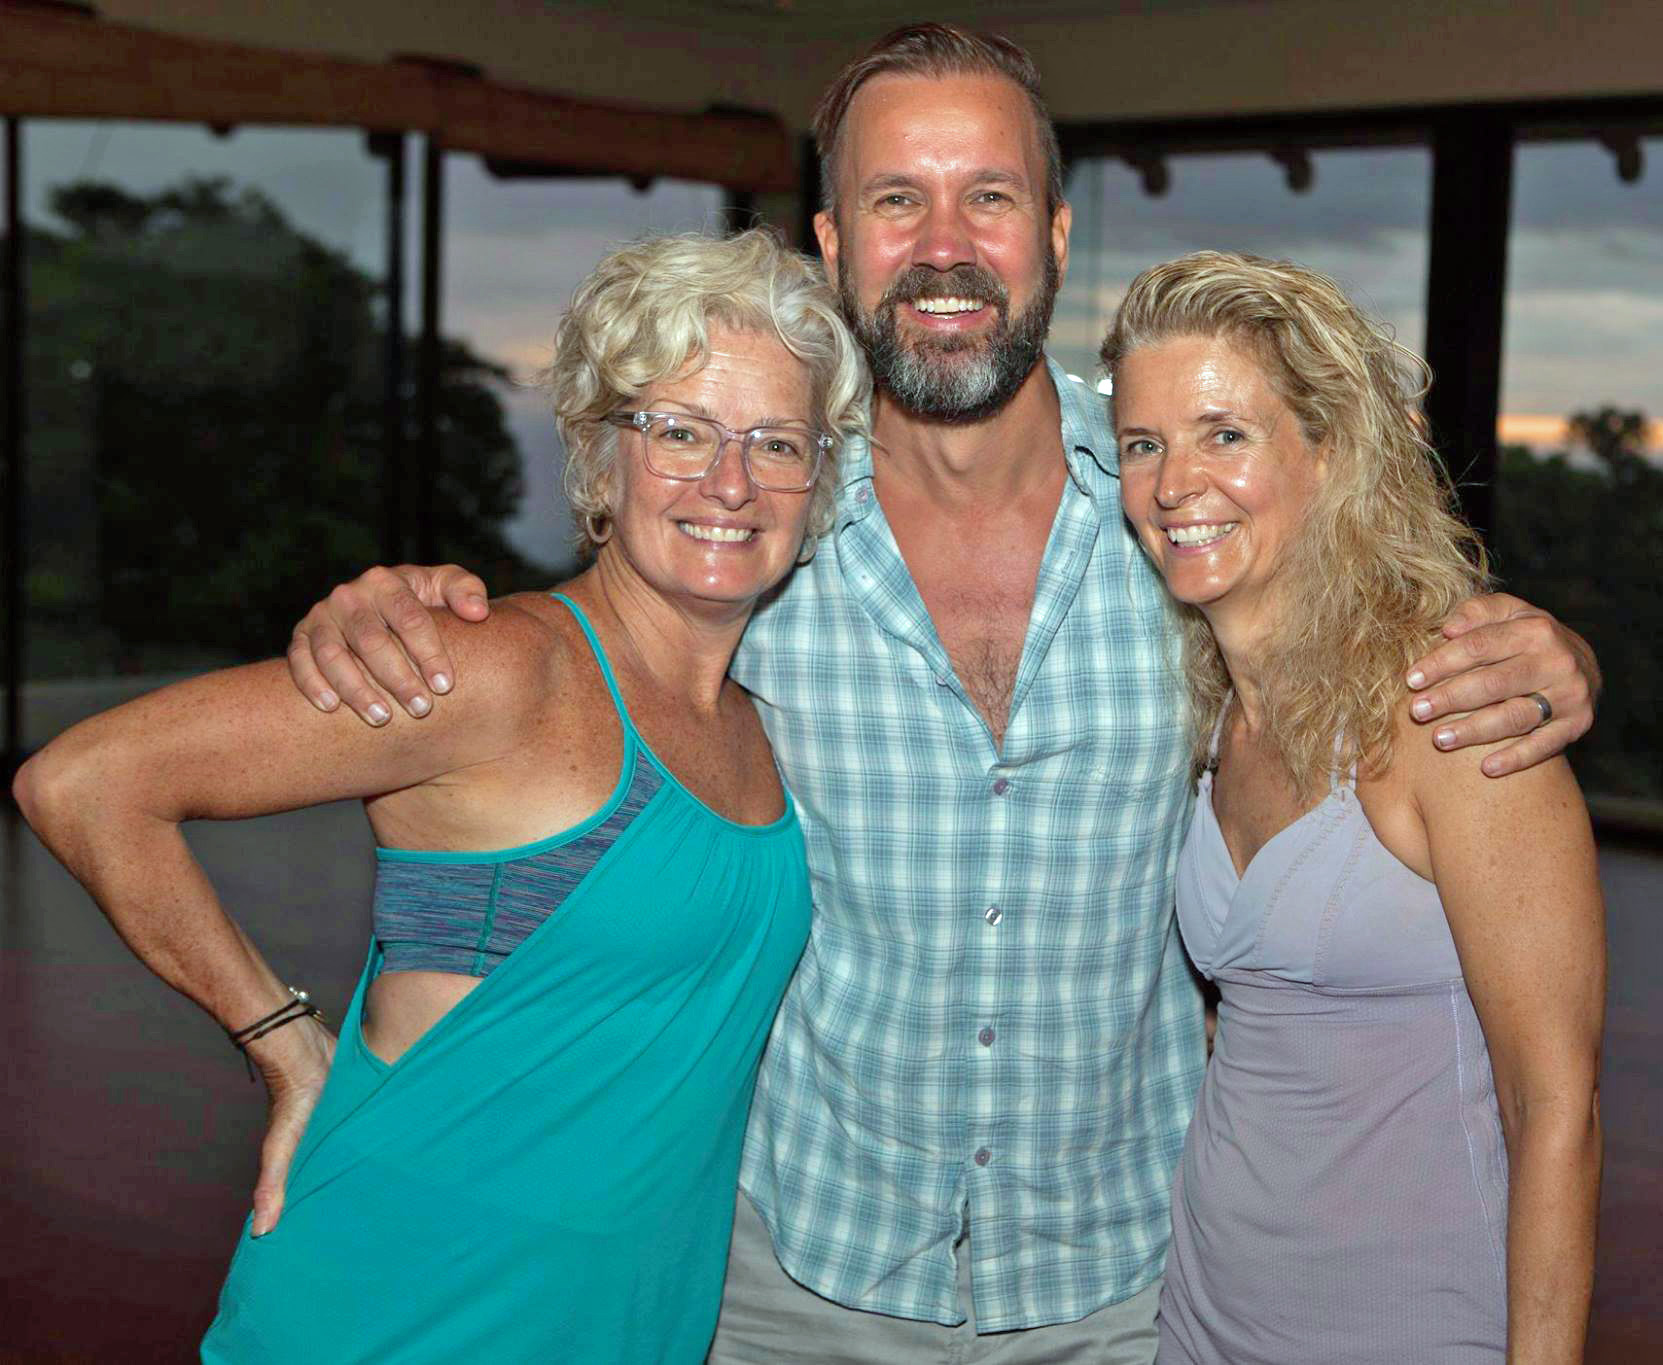 Roxane with her sister Renee and Ted Grand, co-founder Moksha Yoga Int'l